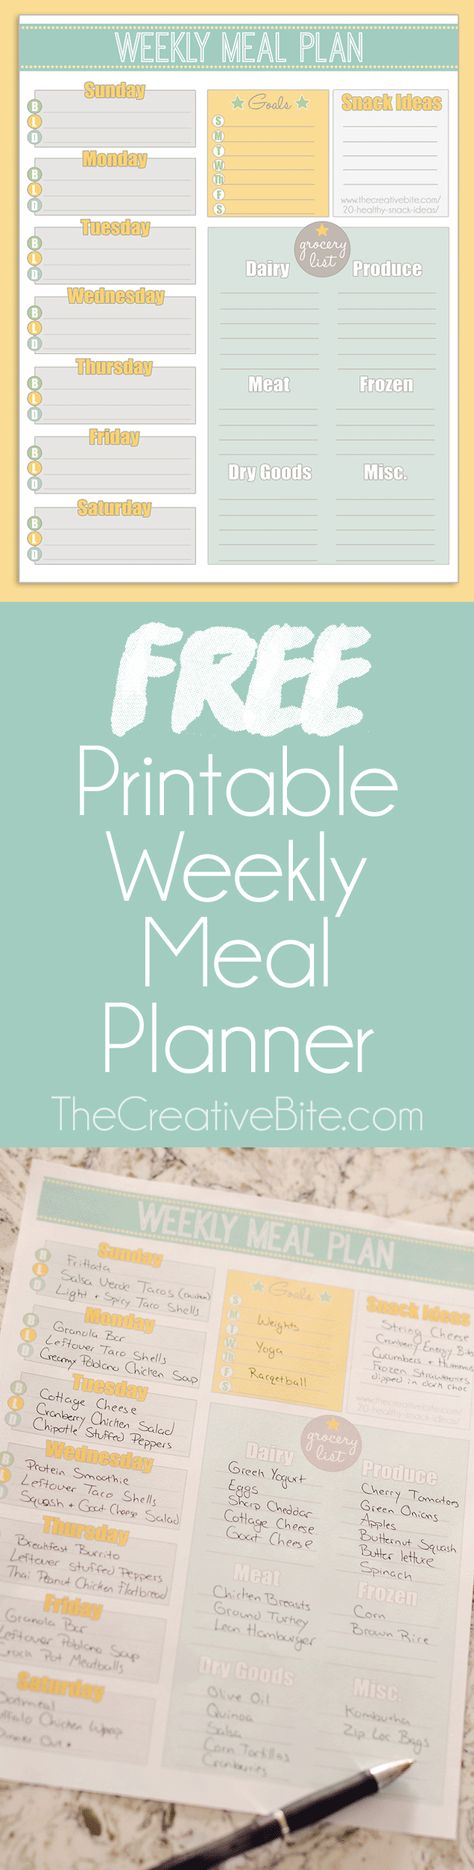 102 best Printables & Fonts images on Pinterest | Fall season ...